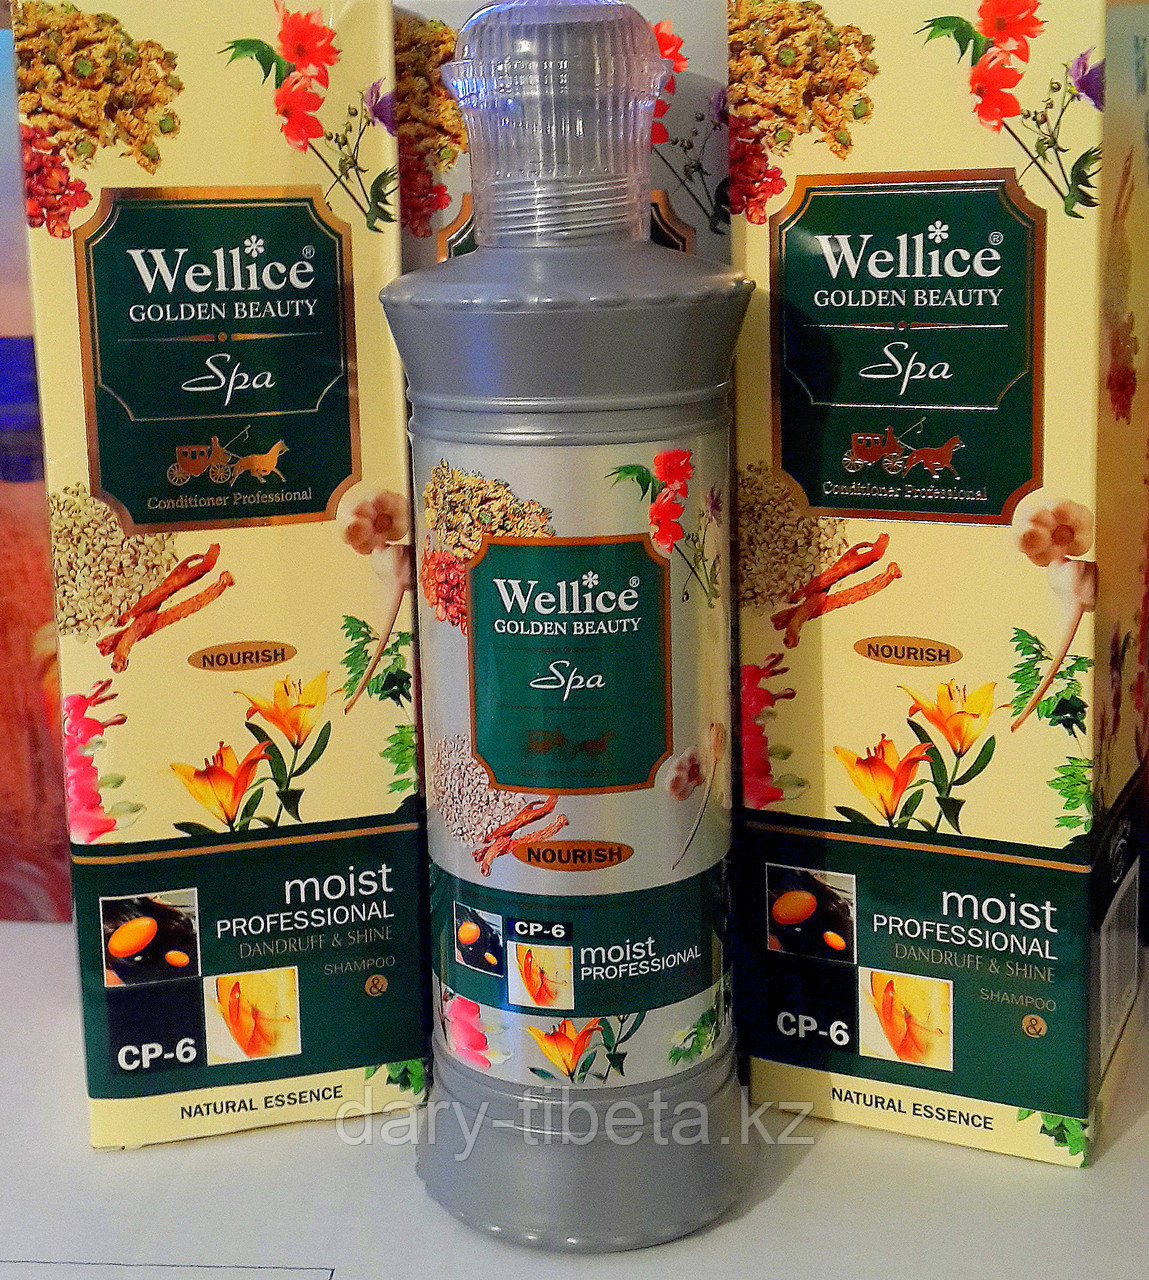 Wellice Golden Beauty шампунь For Dry